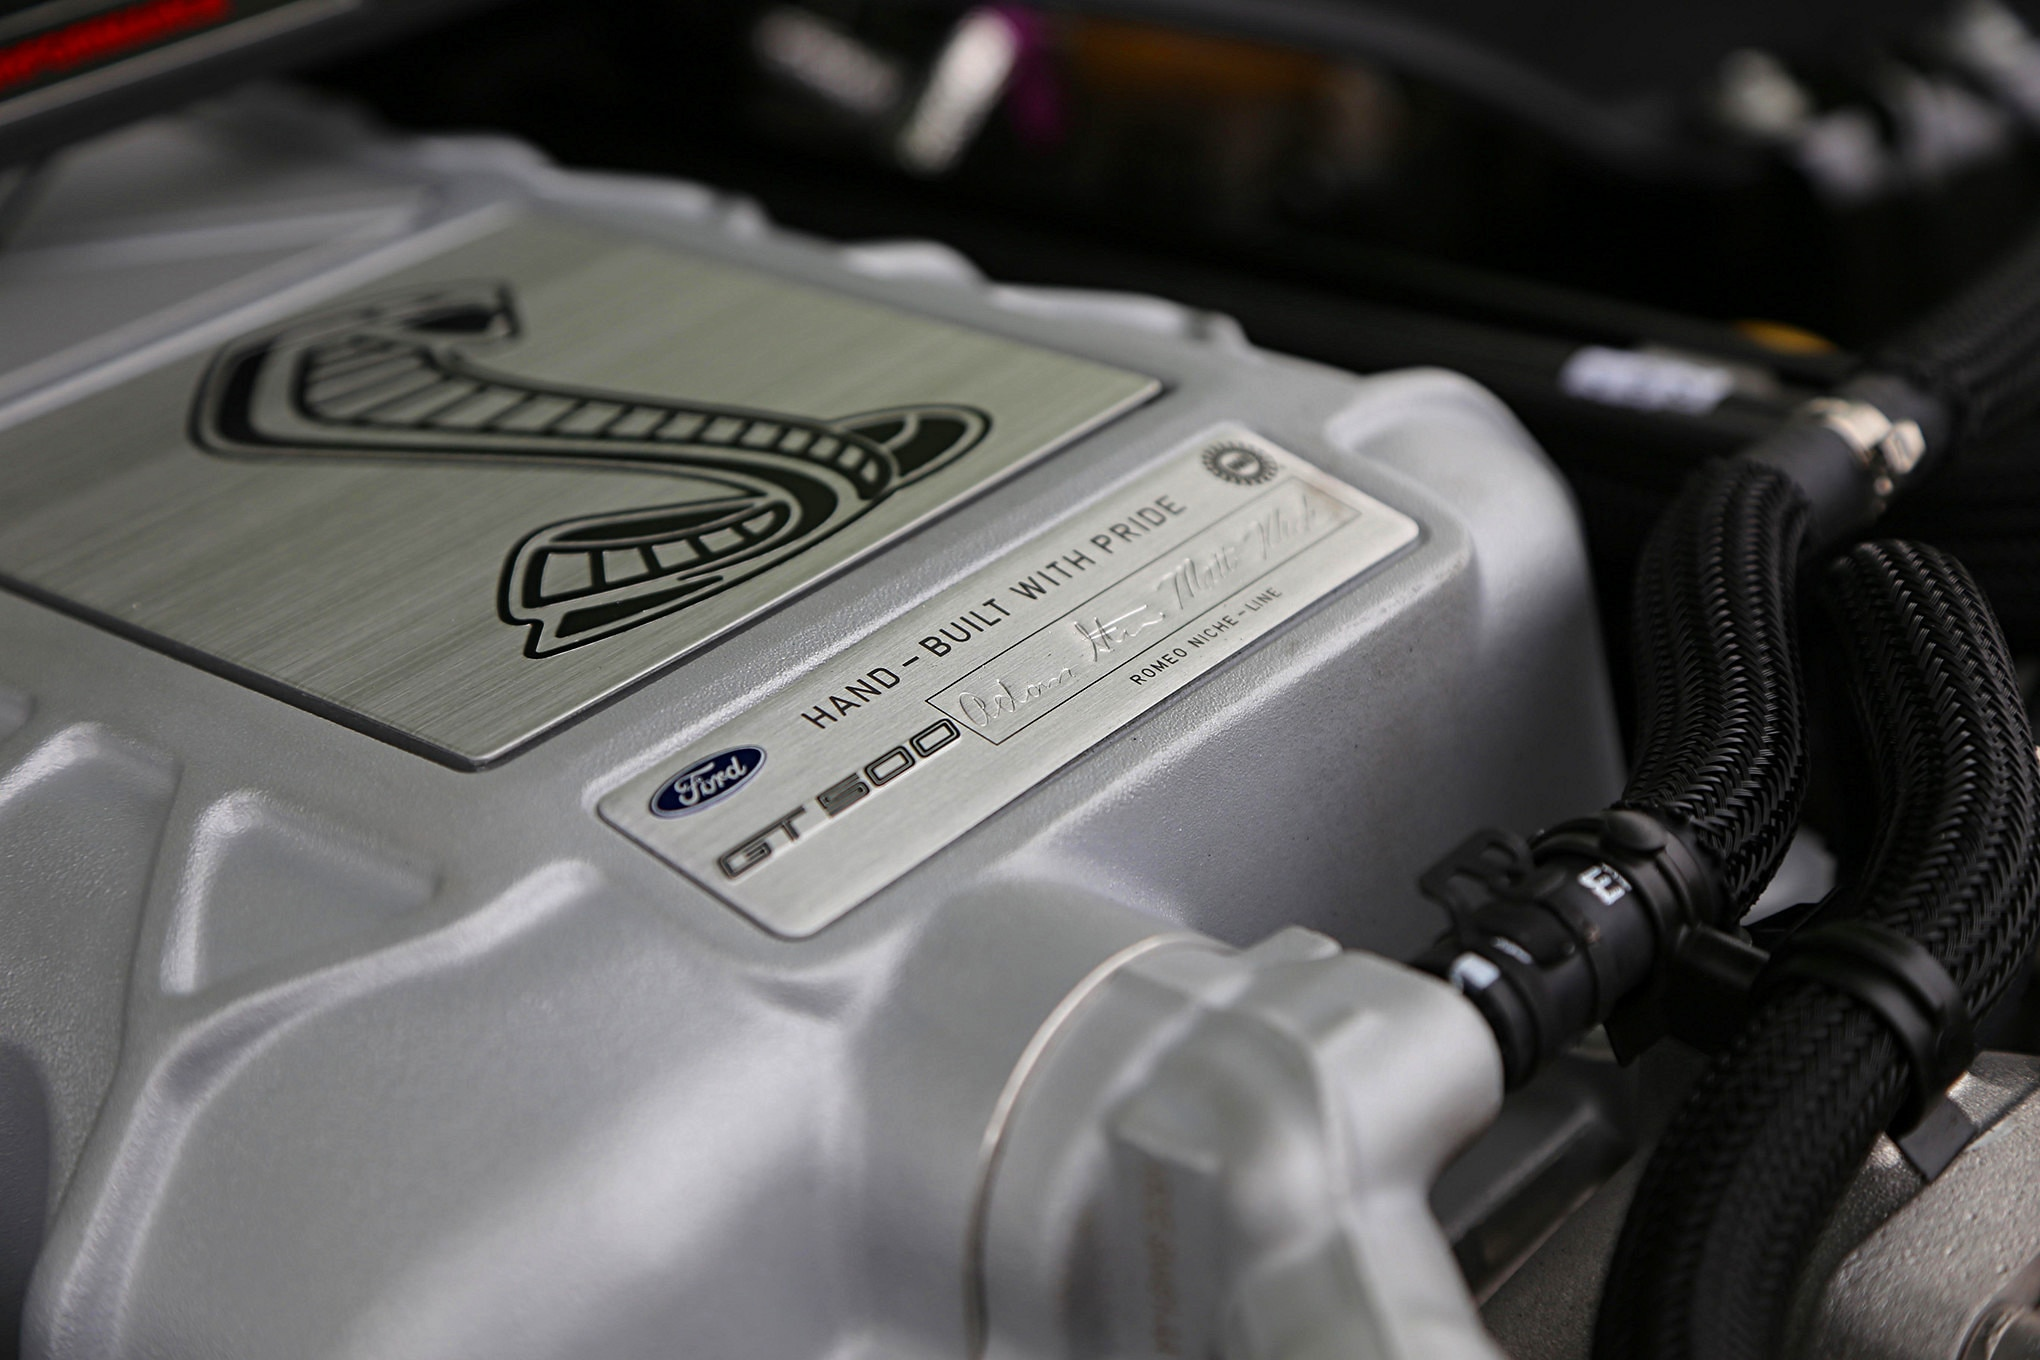 006 2020 Shelby GT500 Engine